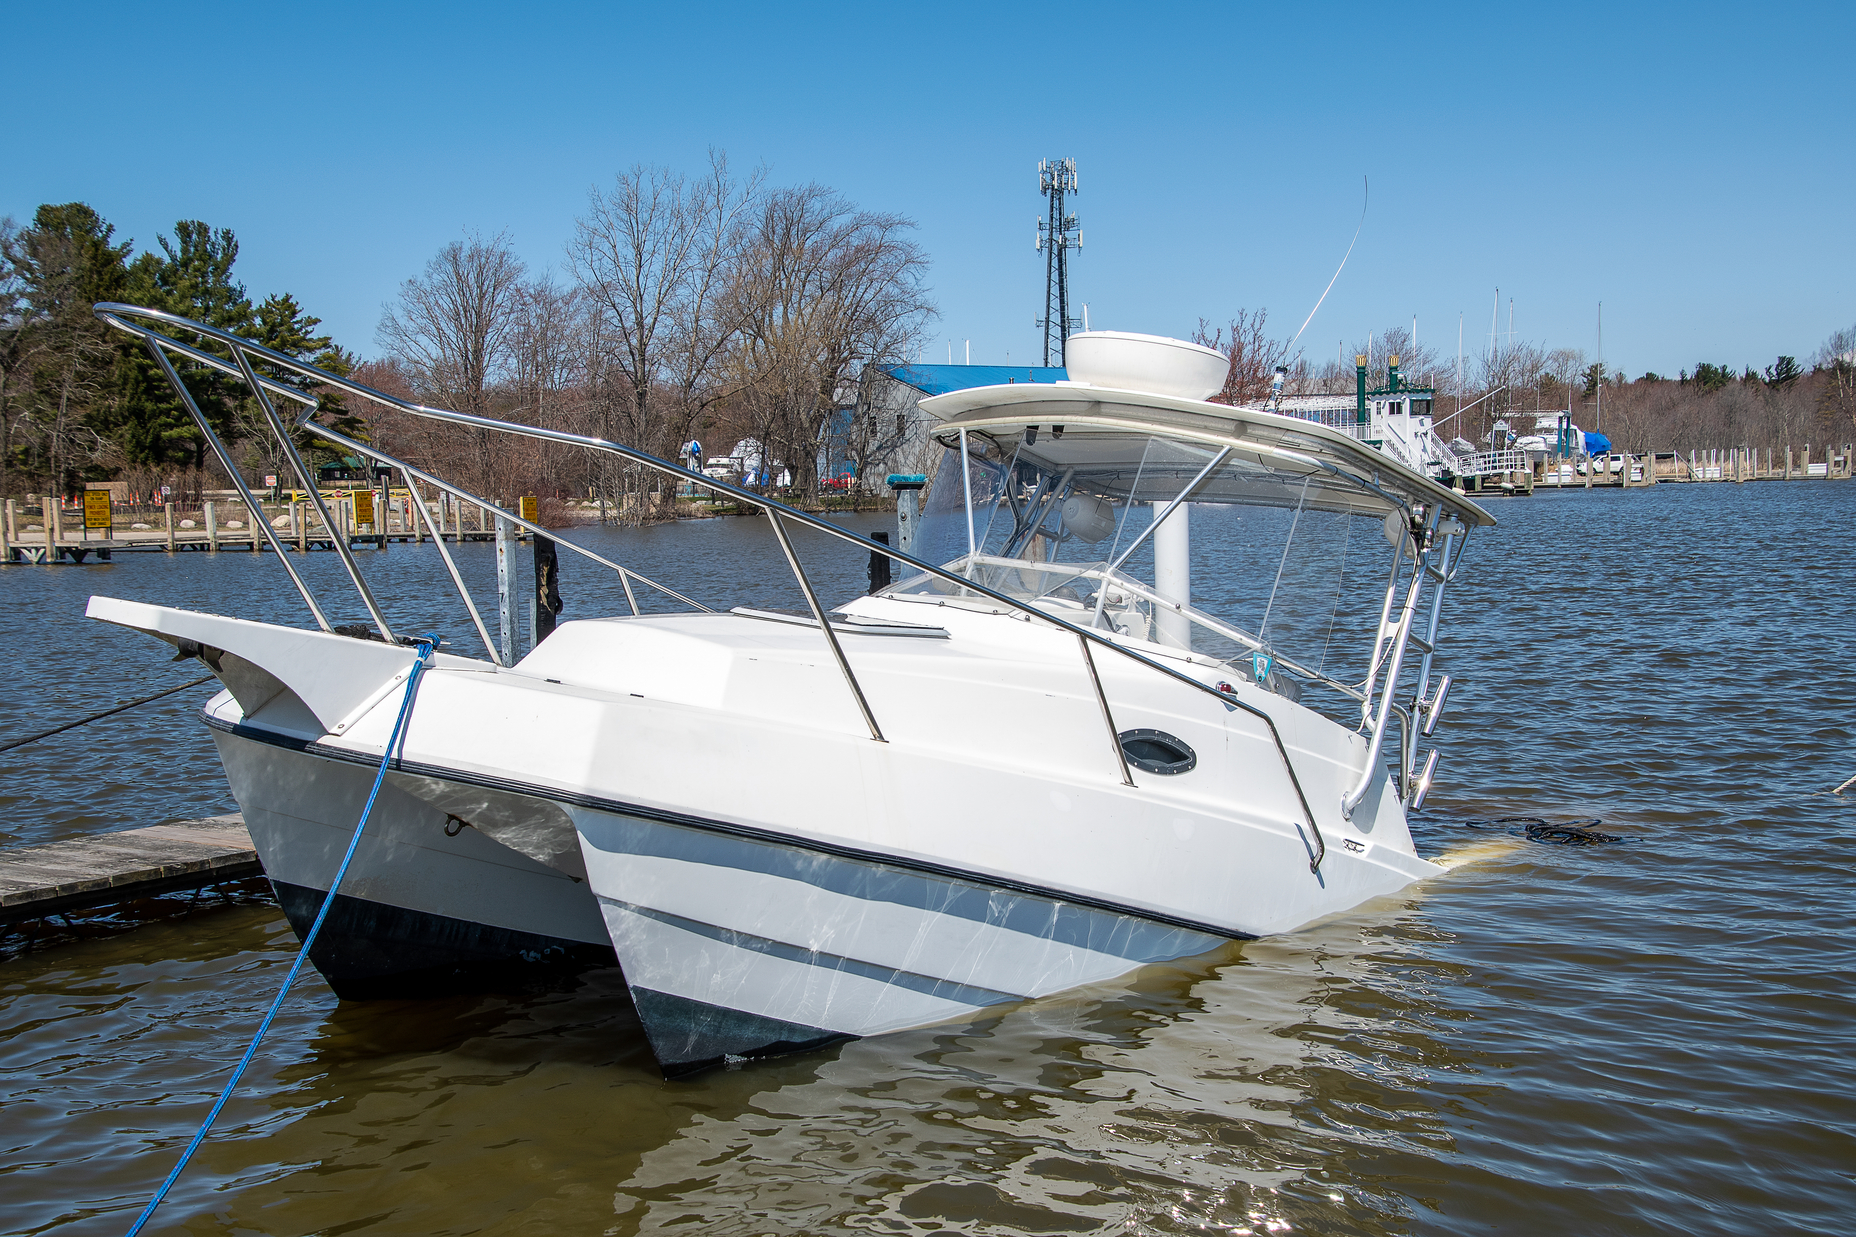 Boat Buyers Beware: 10 Hidden Problems to Look For in Used Boats thumbnail